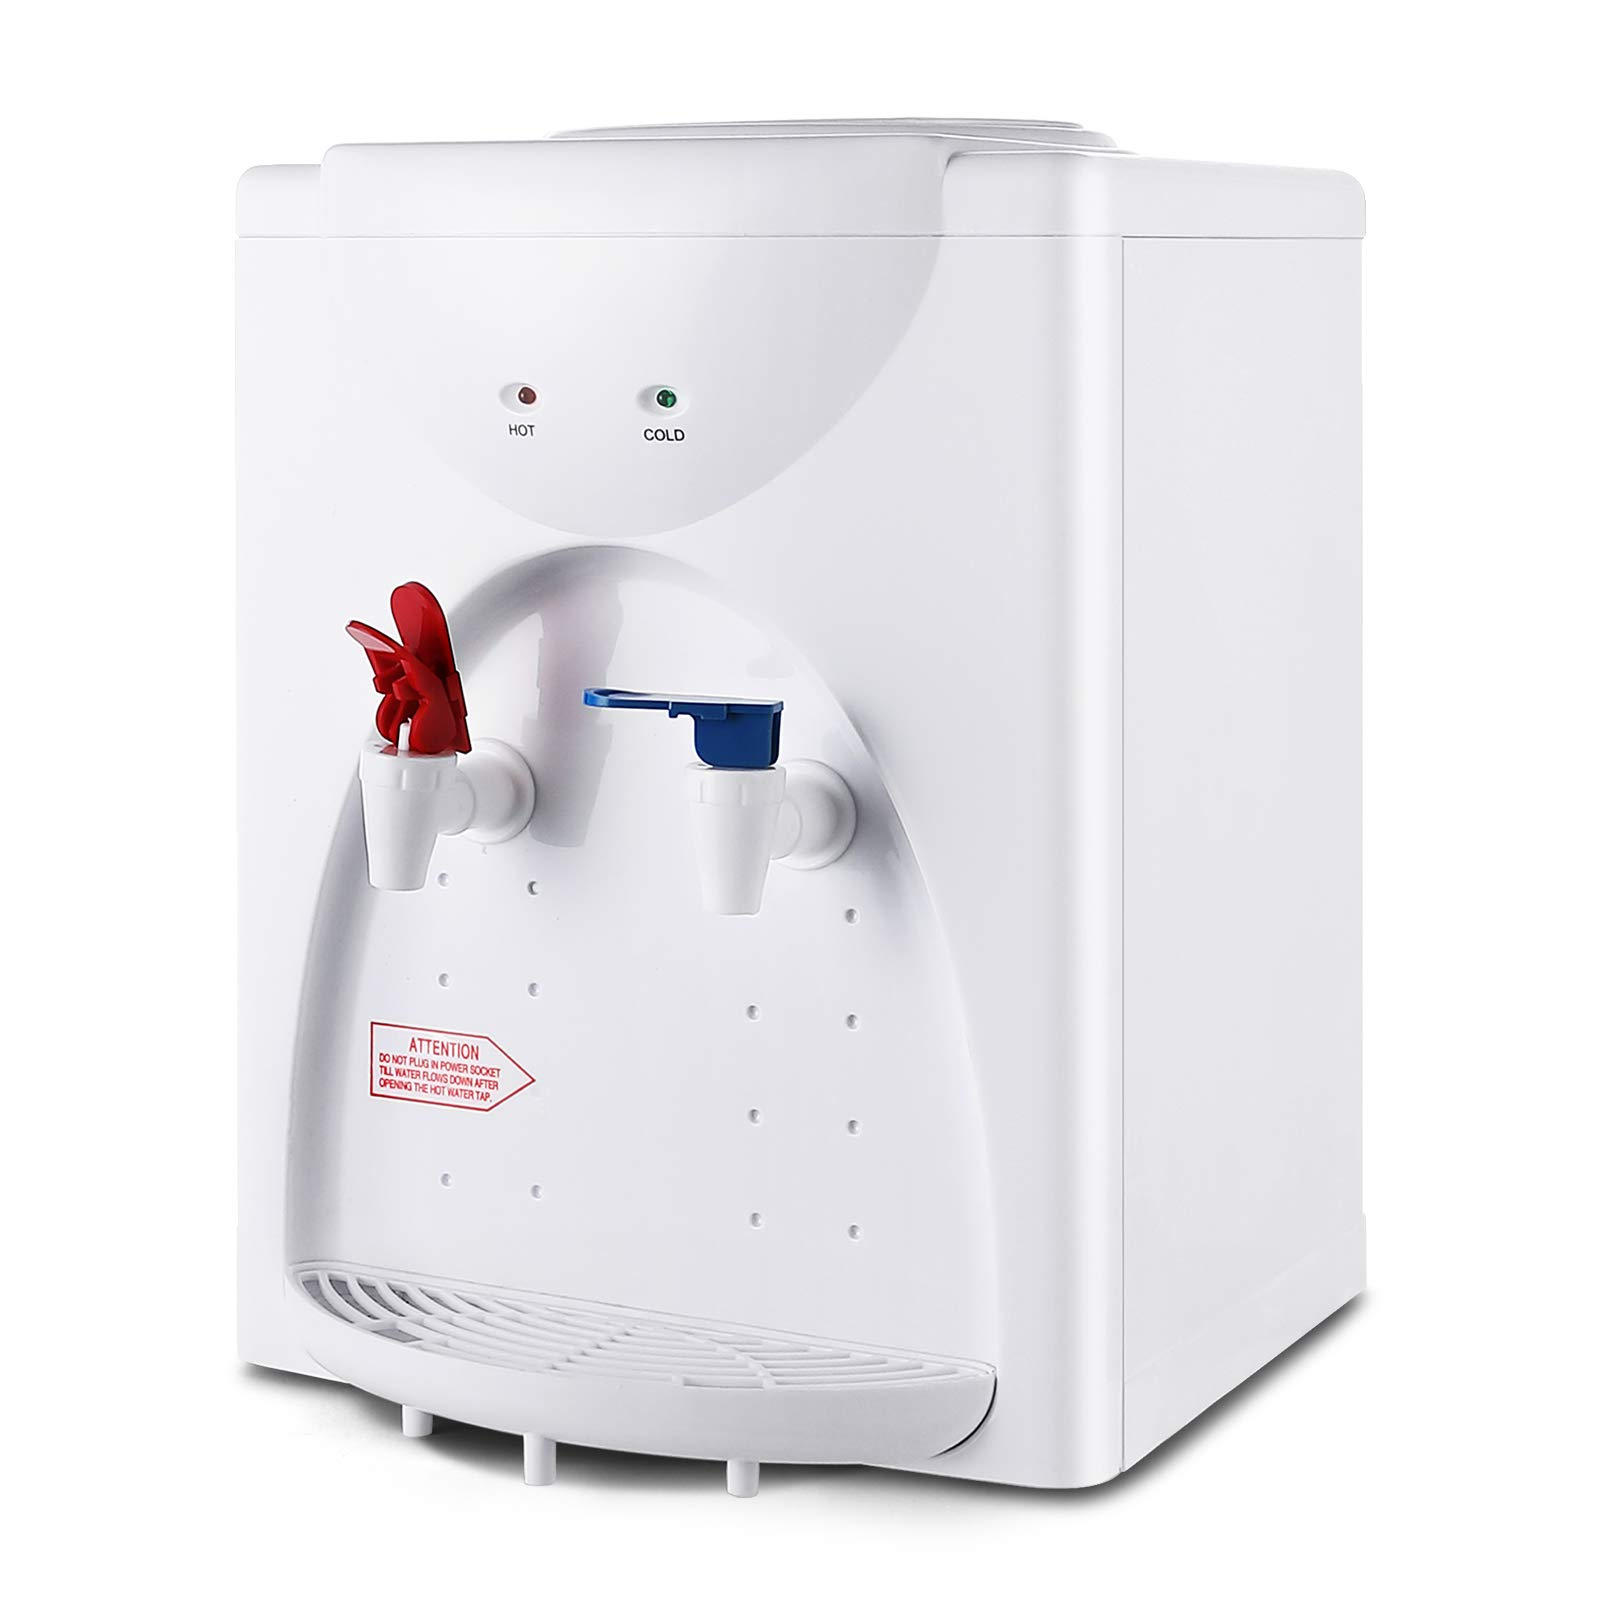 4-EVER Countertop Water Dispenser Table Top Loading Hot & Cold Water for Work, Home, Office Use,White